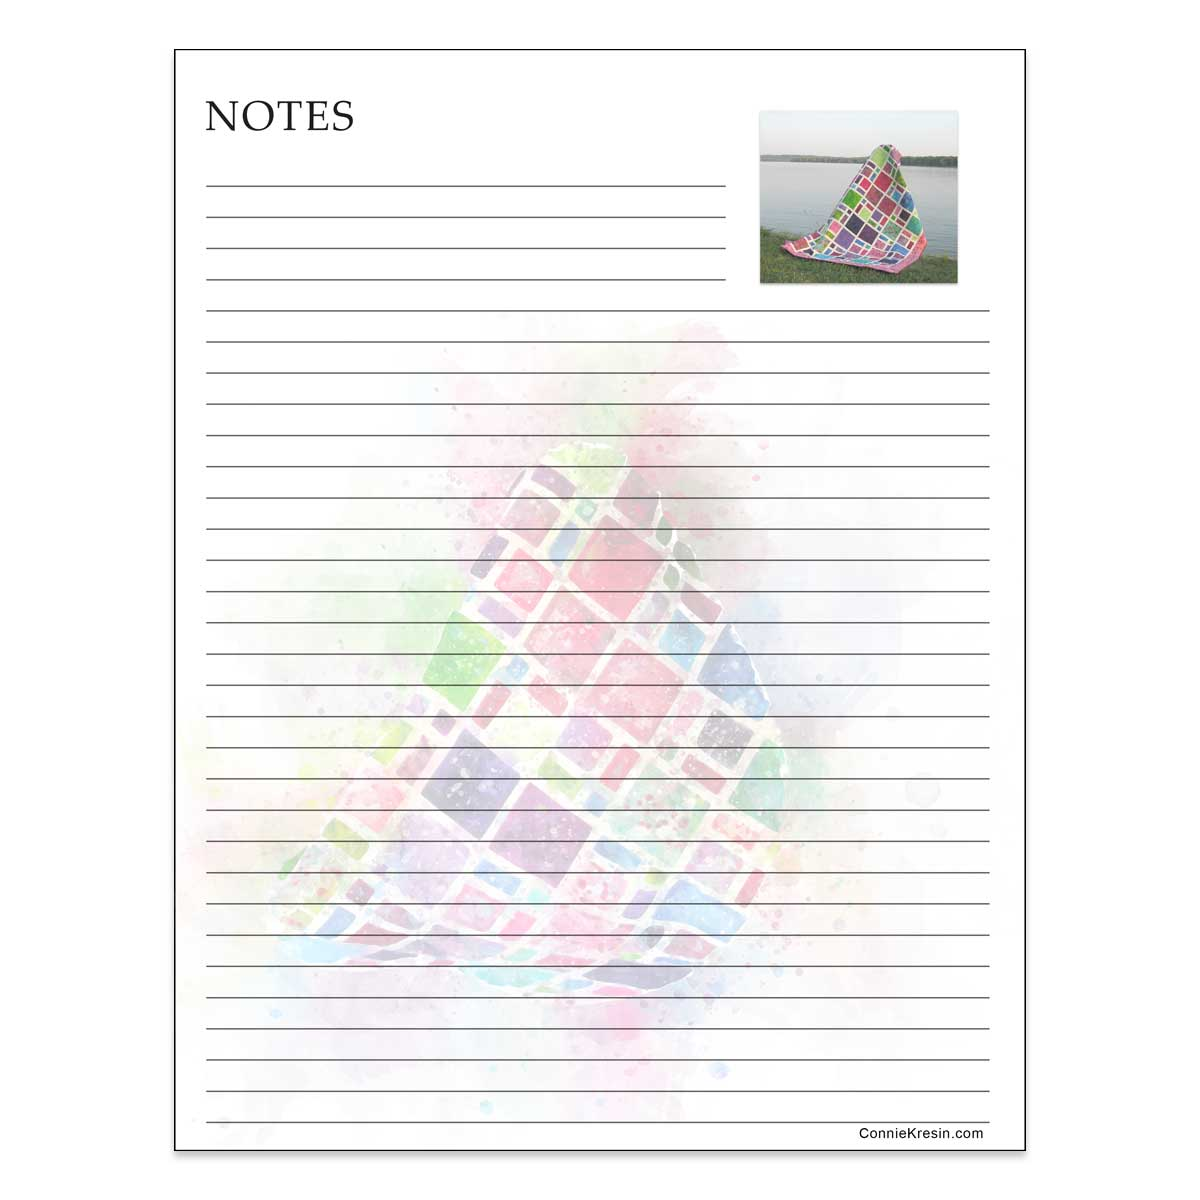 Notes printable of Scattered quilt